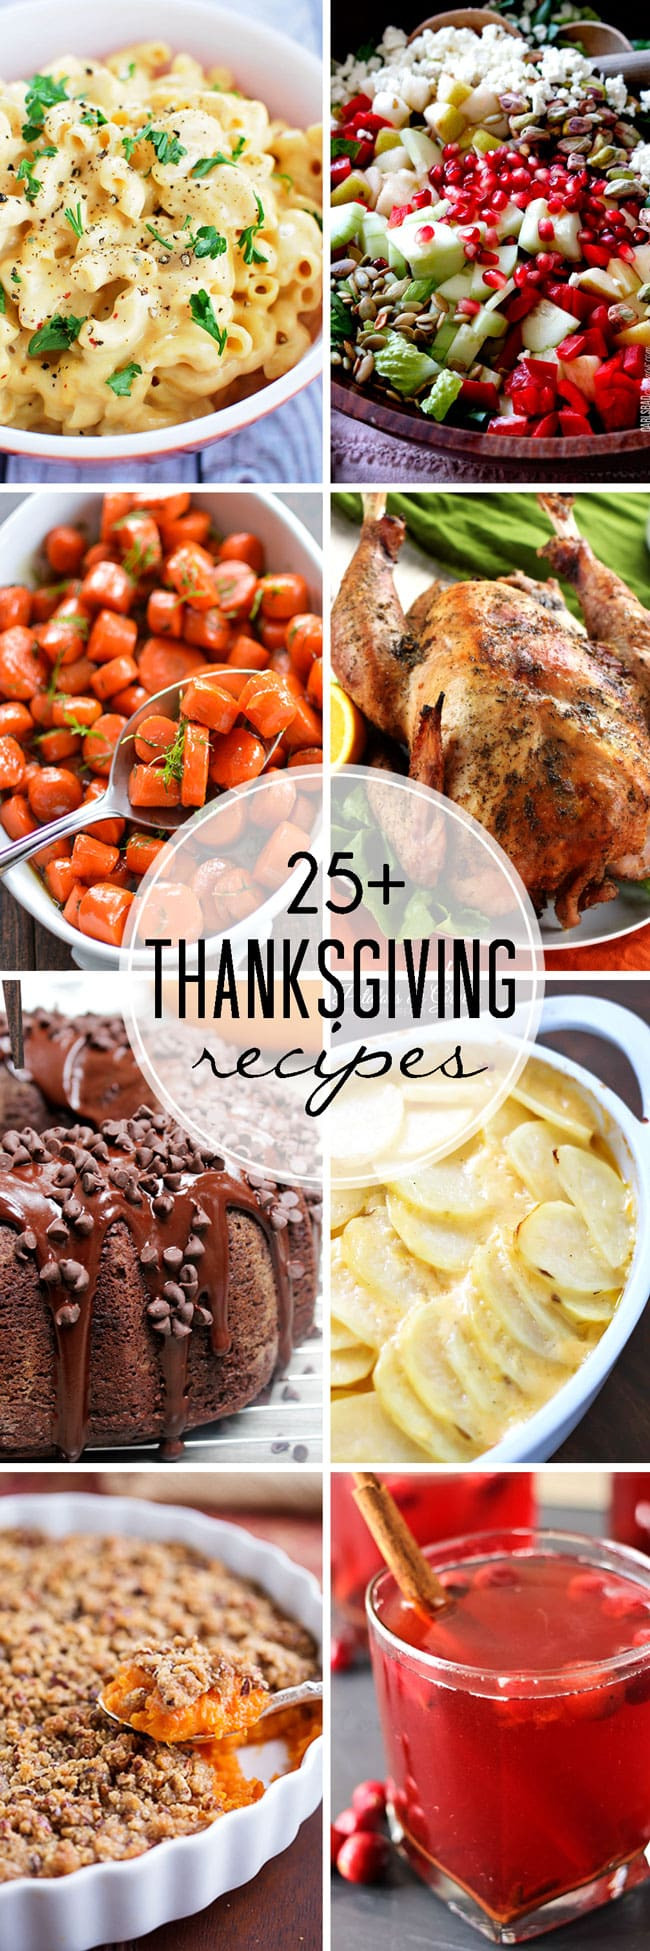 Thanksgiving Dinner Dishes  25 Thanksgiving Recipes That Skinny Chick Can Bake